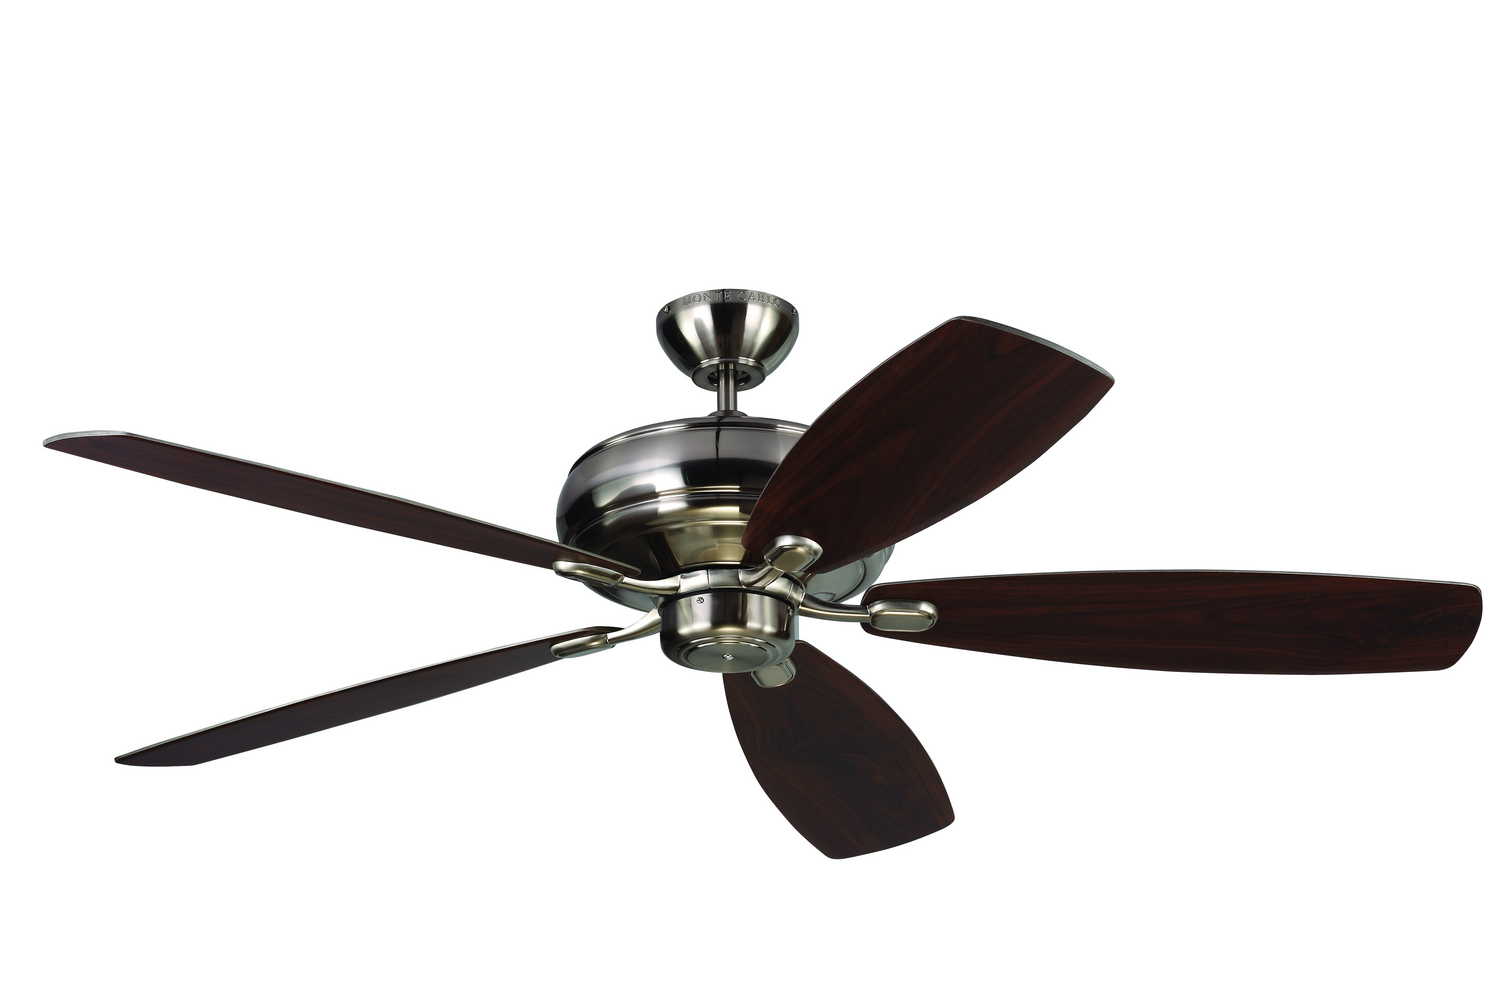 60 inch Ceiling Fan from the Embassy Max collection by Monte Carlo 5EM60BS